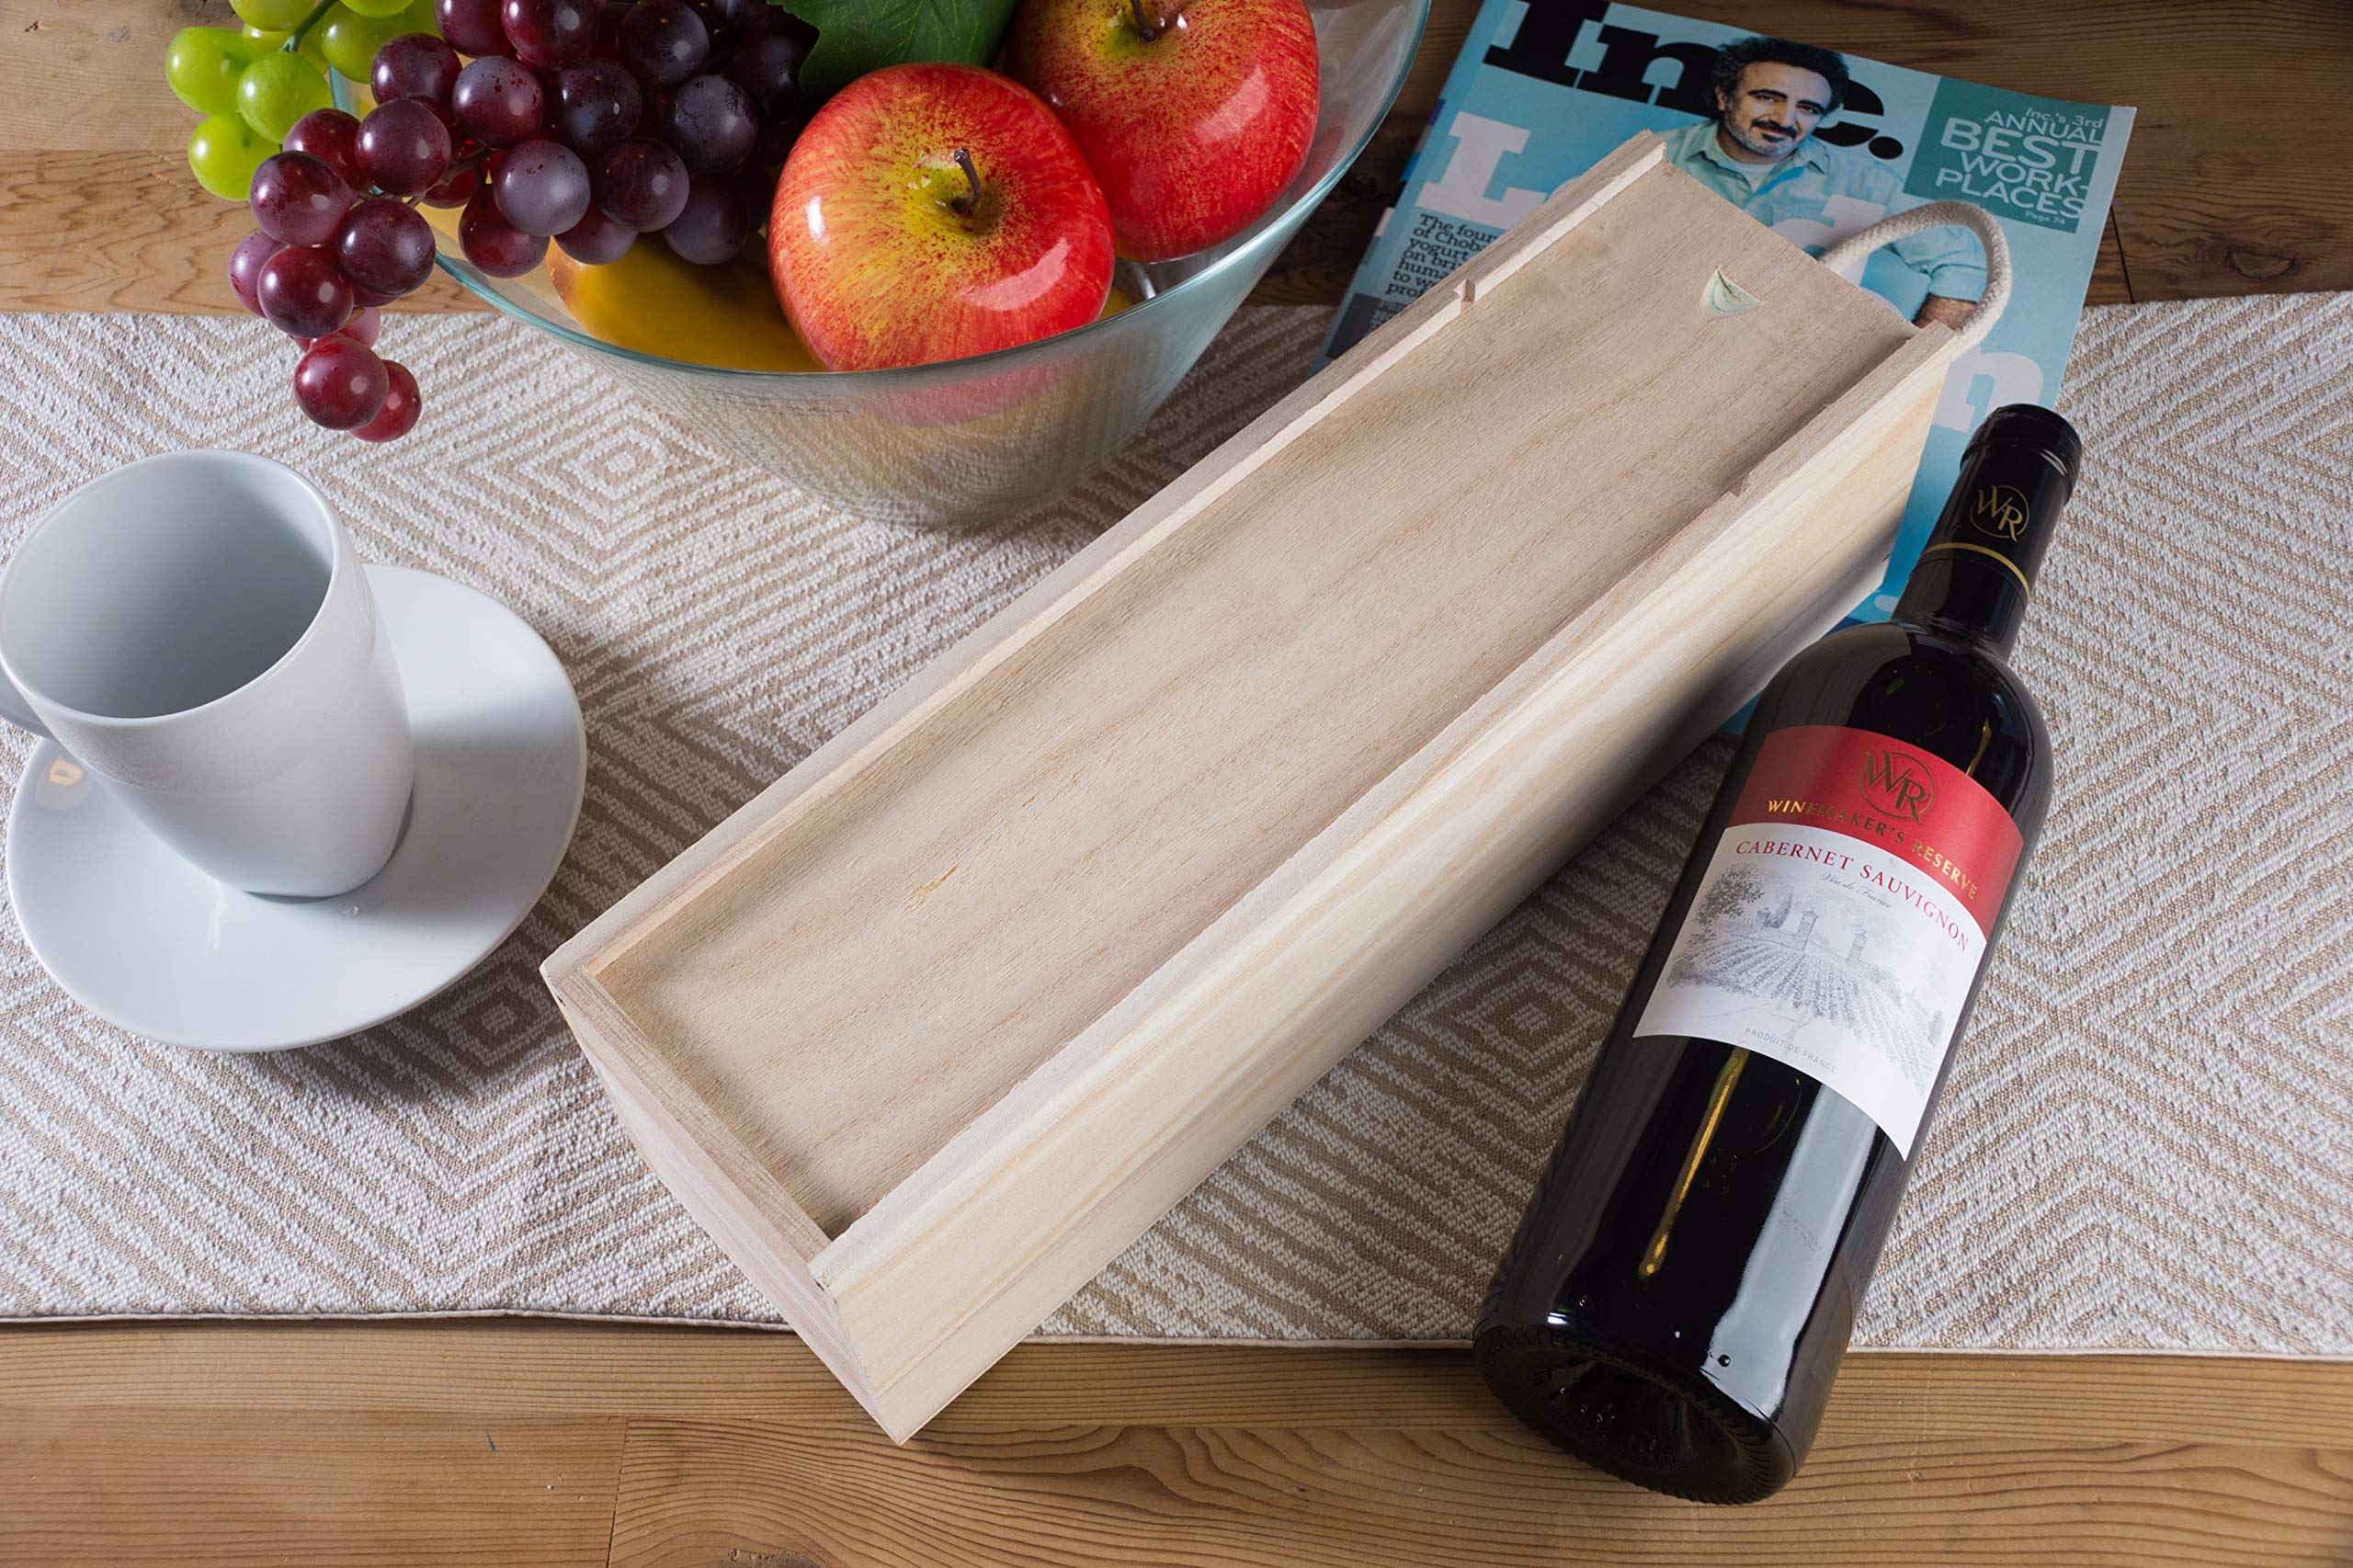 Juvale Wooden Wine Box - 2-Pack Single Wine Bottle Wood Storage Gift Box with Handle for Birthday Party, Housewarming, Wedding, Anniversary, 13.875 x 3.875 x 4 Inches by Juvale (Image #2)